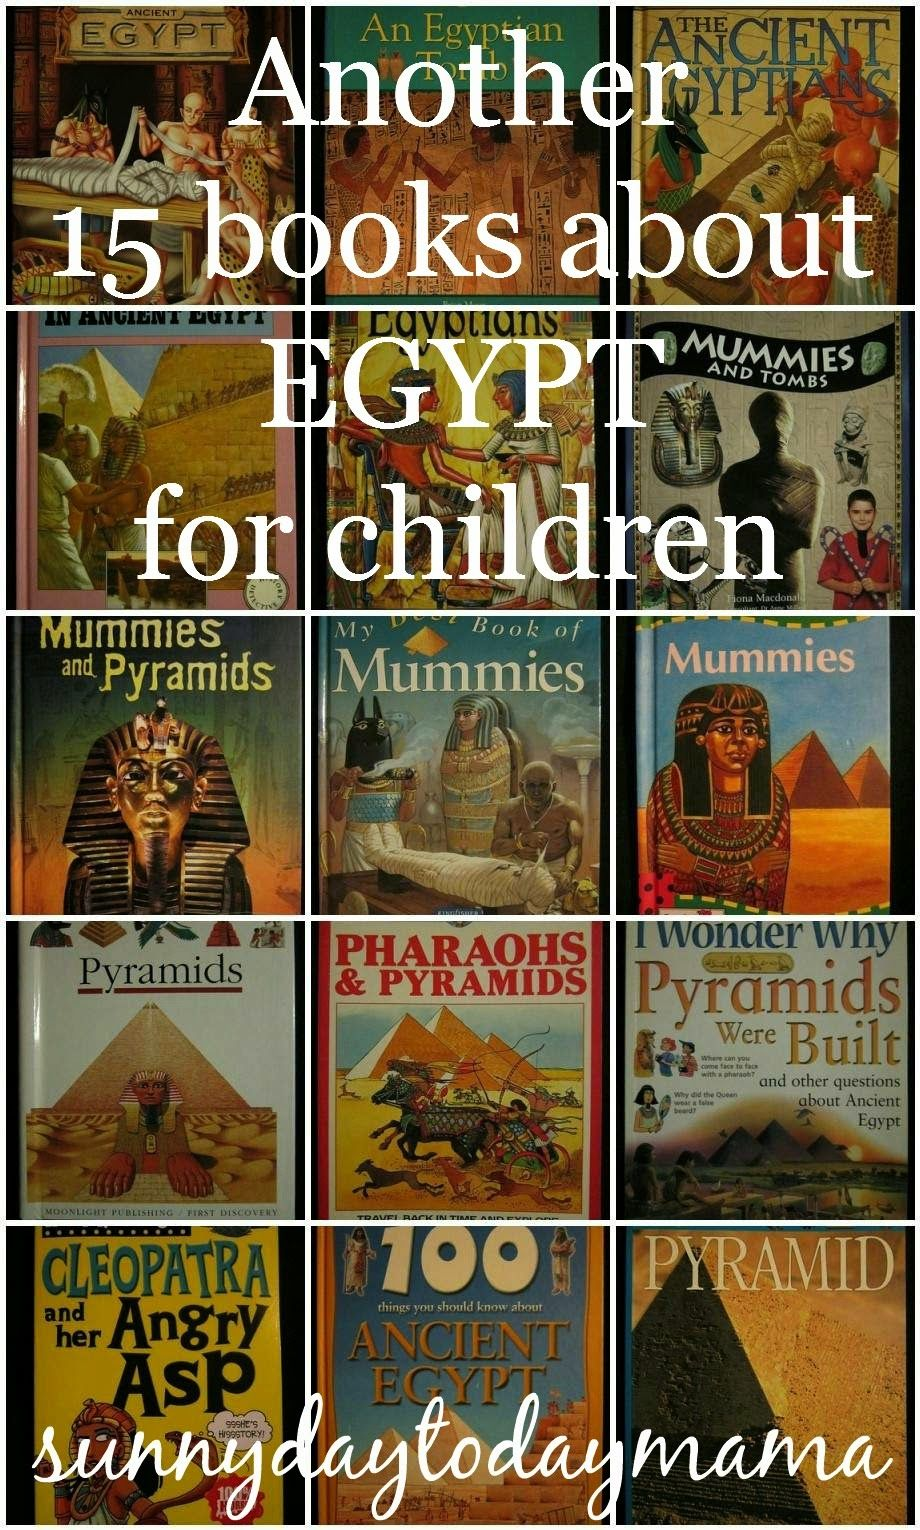 Another 15 books about egypt for children social studies sunnydaytodaymama another 15 books about egypt for children fandeluxe Choice Image